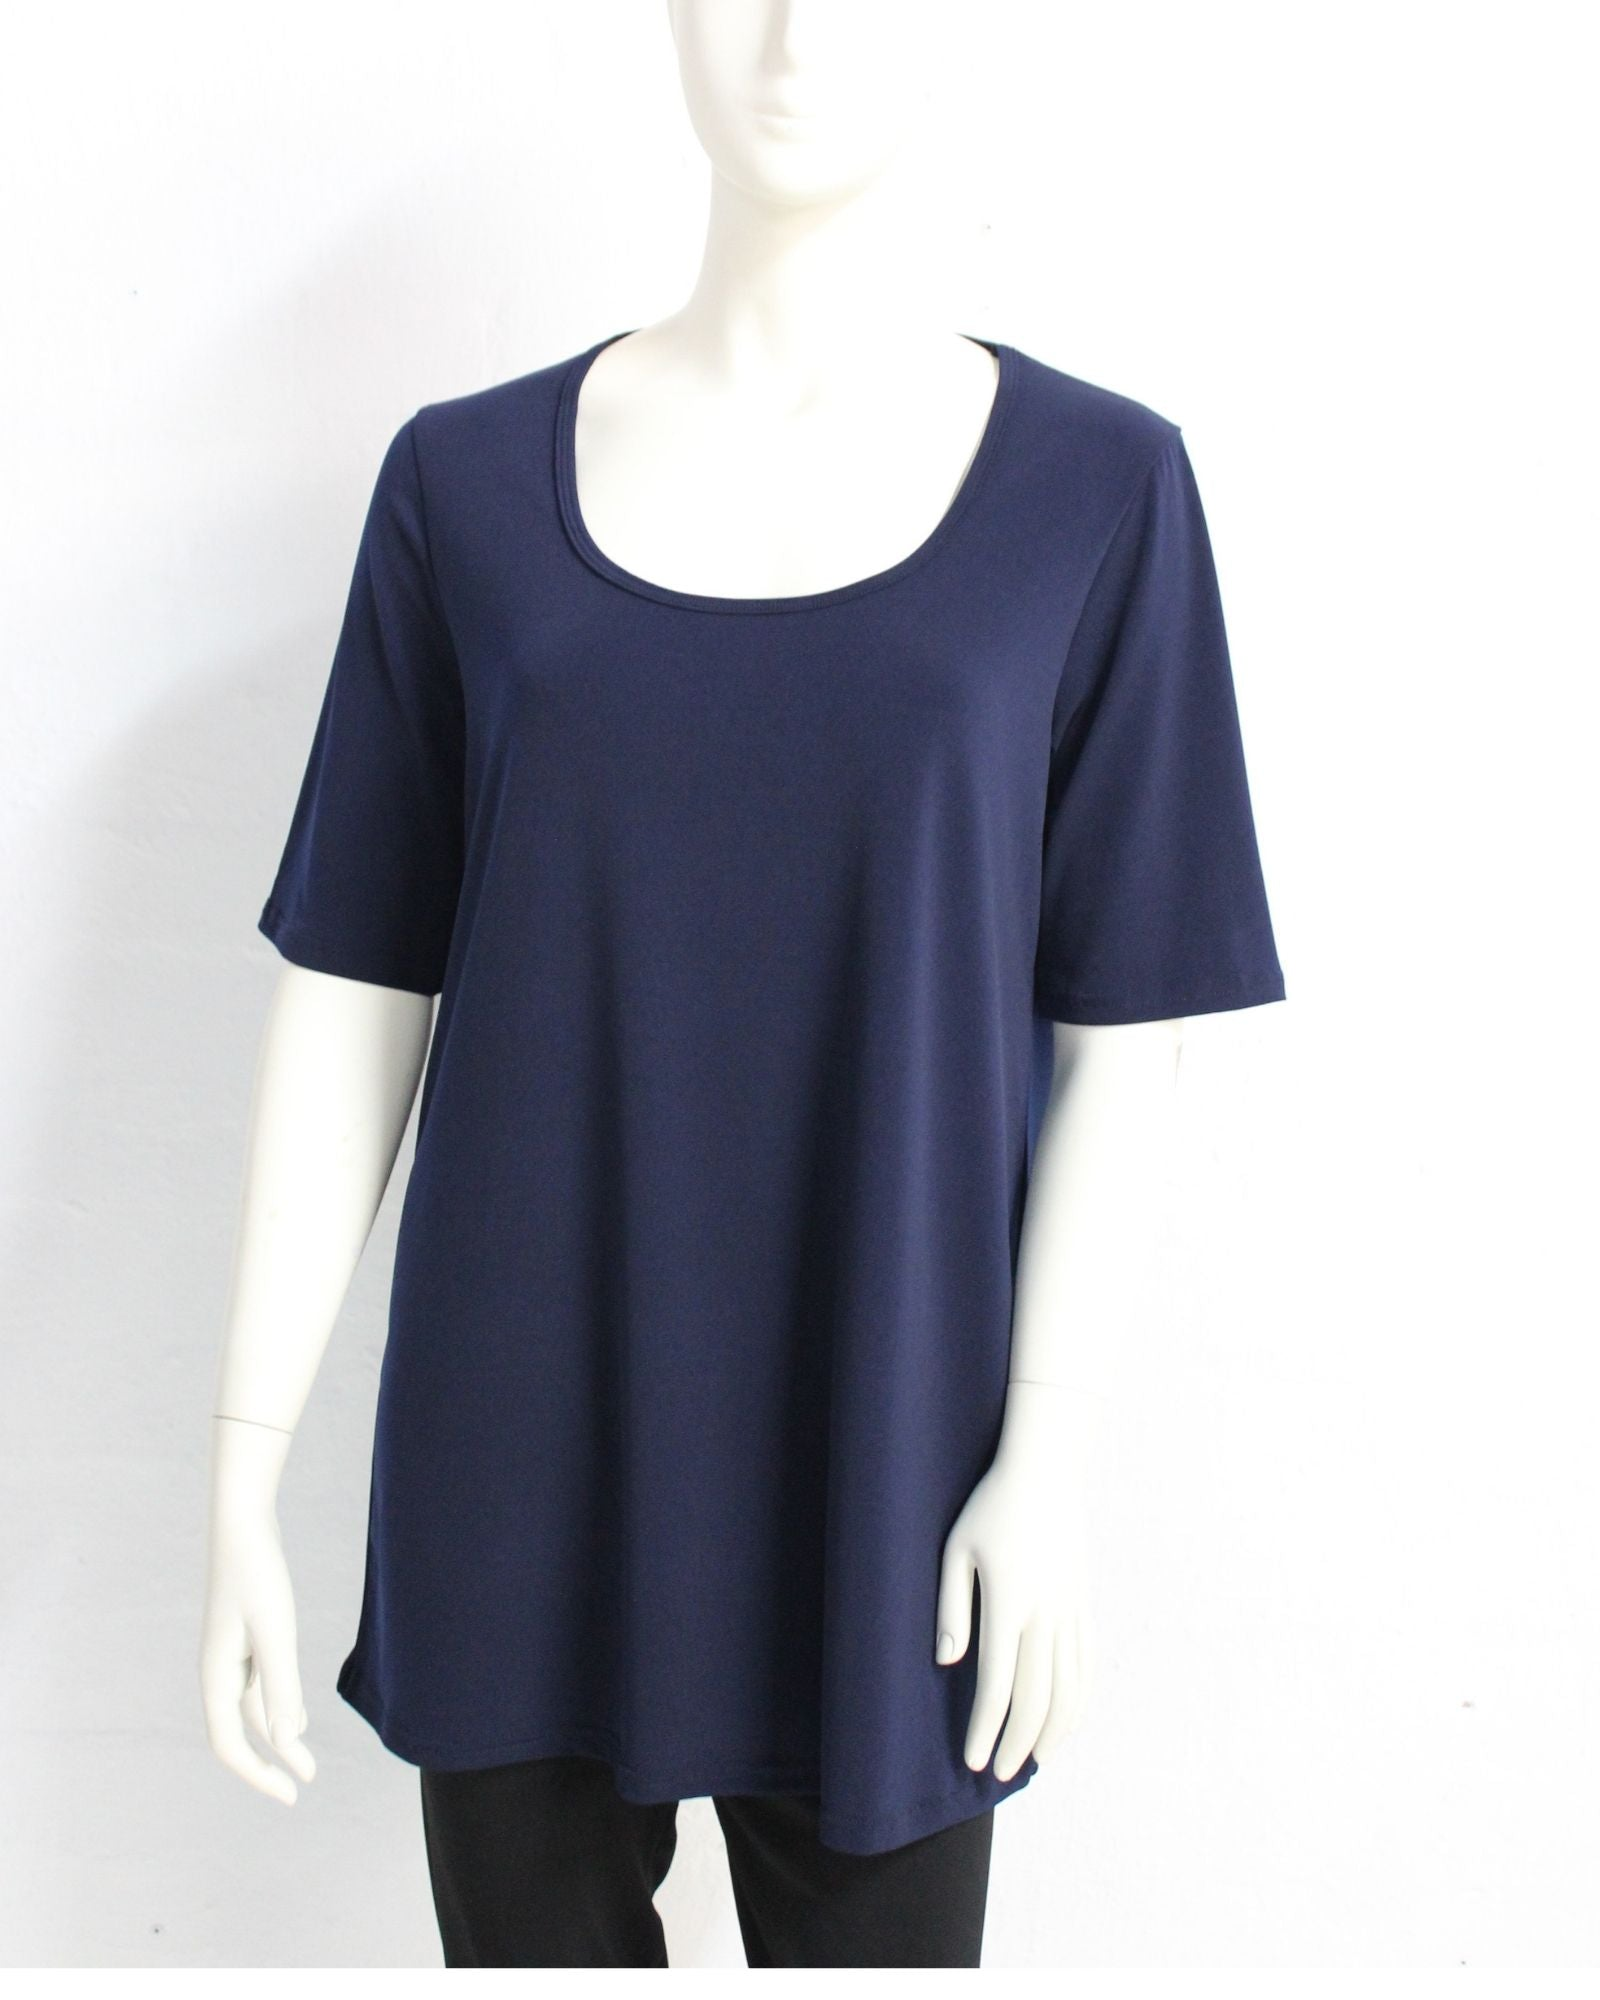 Short Sleeve Soft Knit Top - Navy Size 14